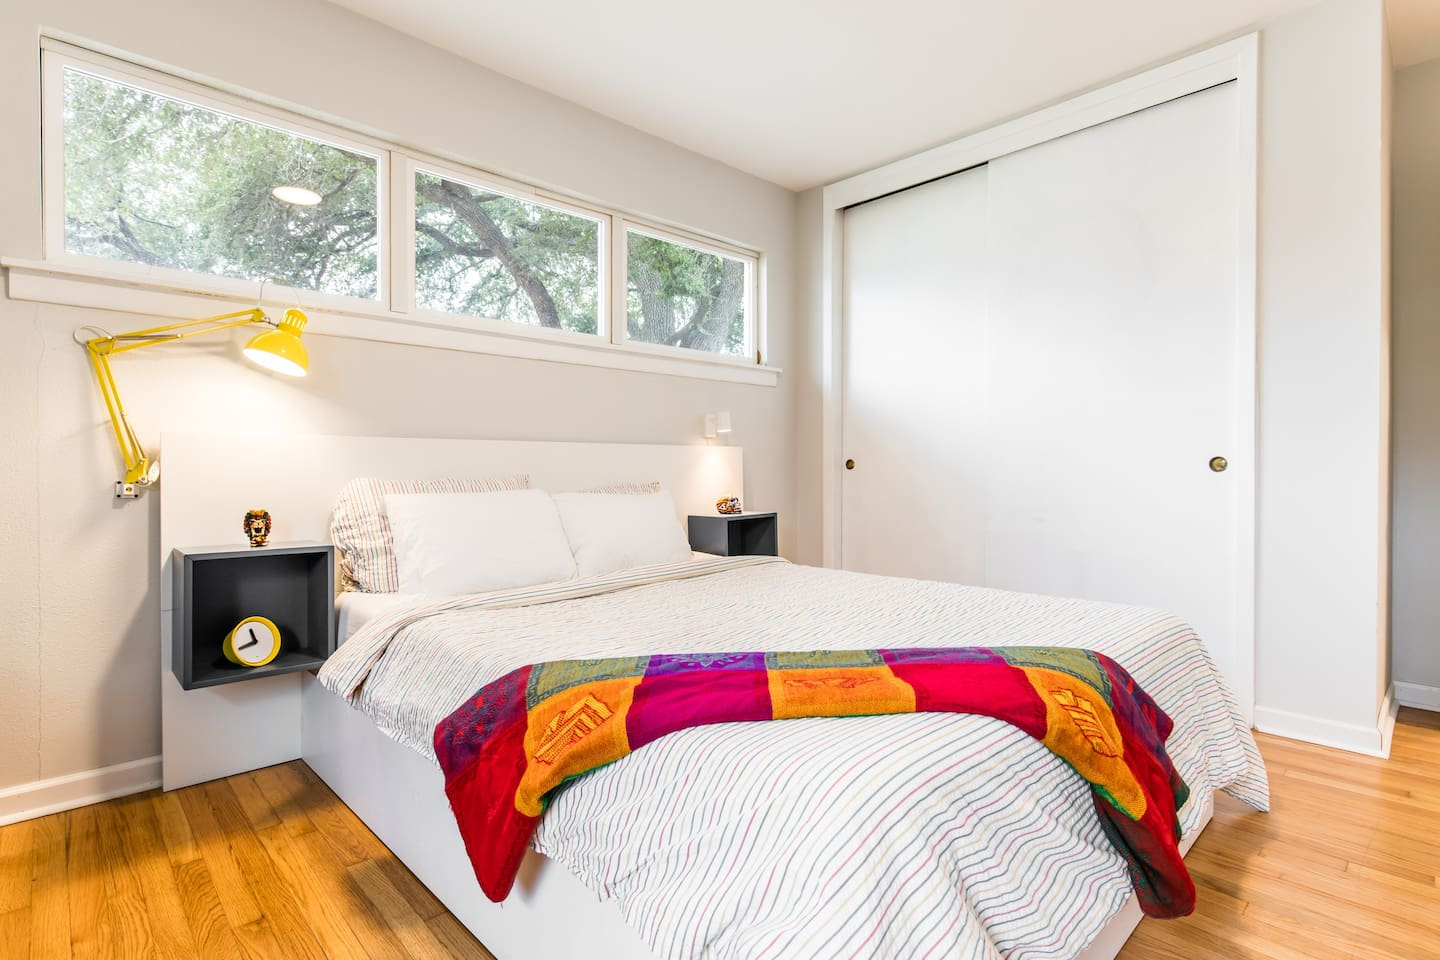 Plenty of natural light inside the room, blinds for confortable ambience at night, super comfy bed